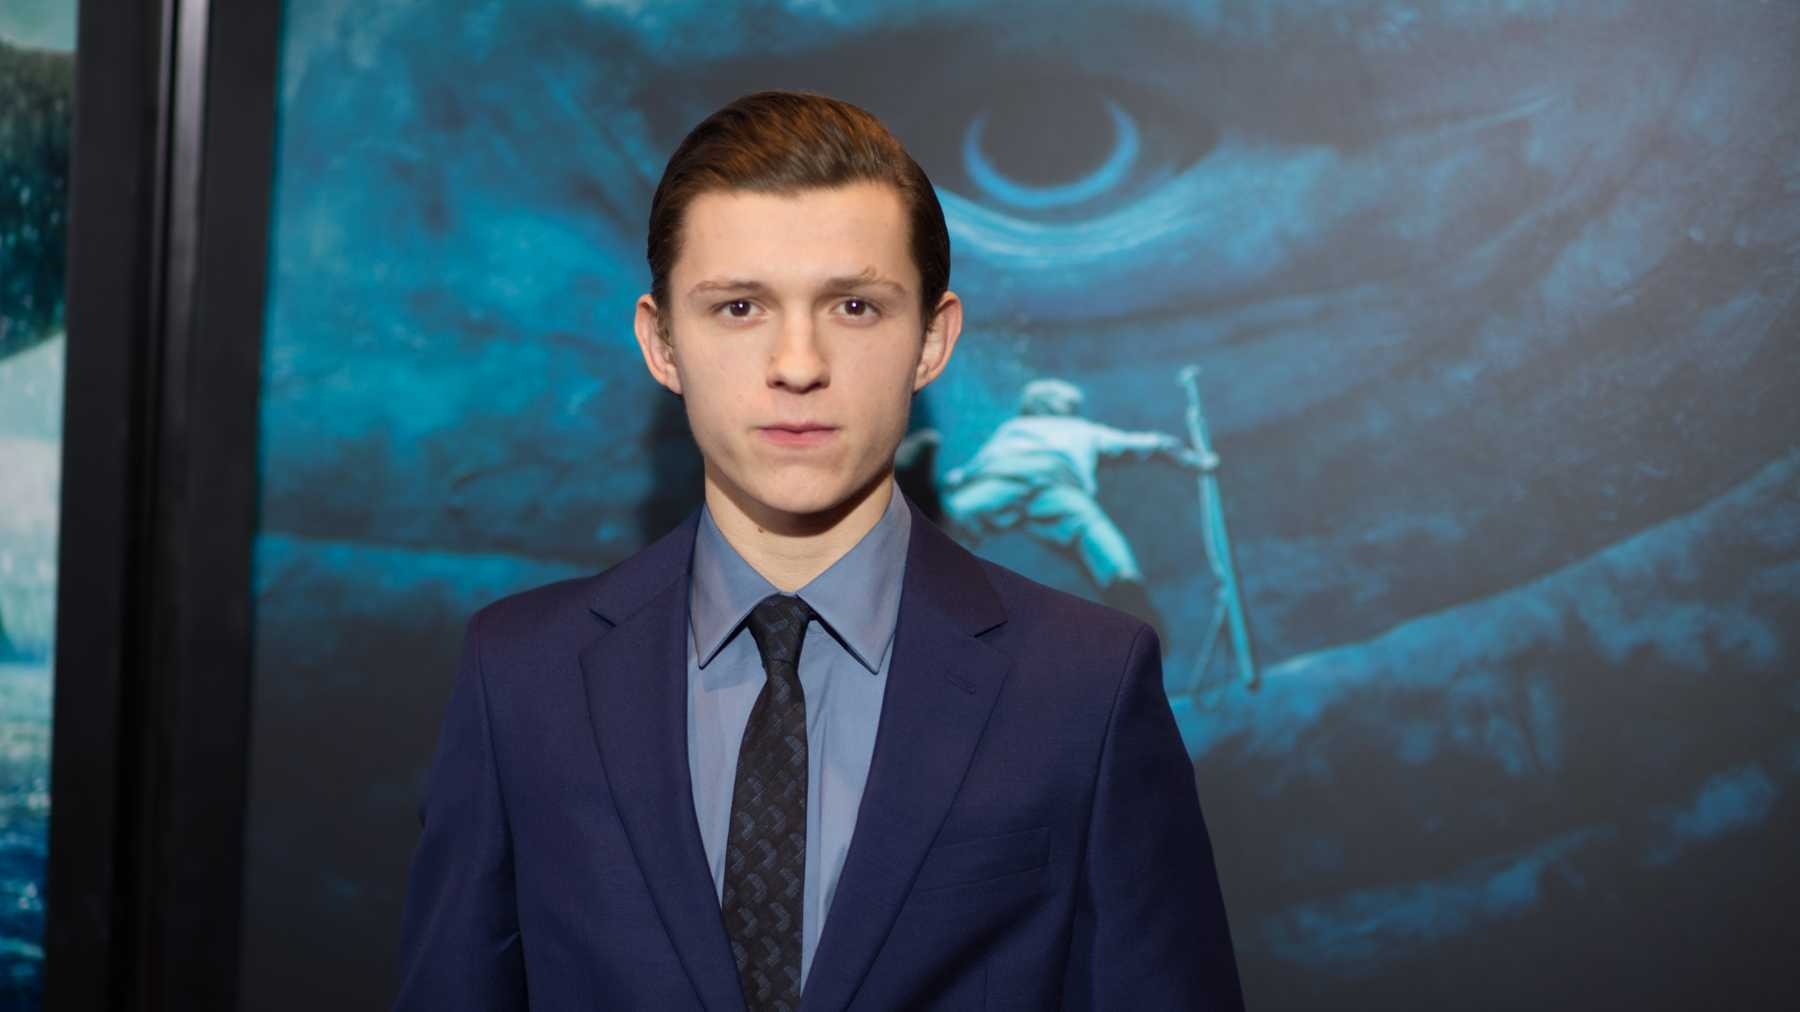 Tom Holland To Play A Young Nathan Drake For Uncharted Movies